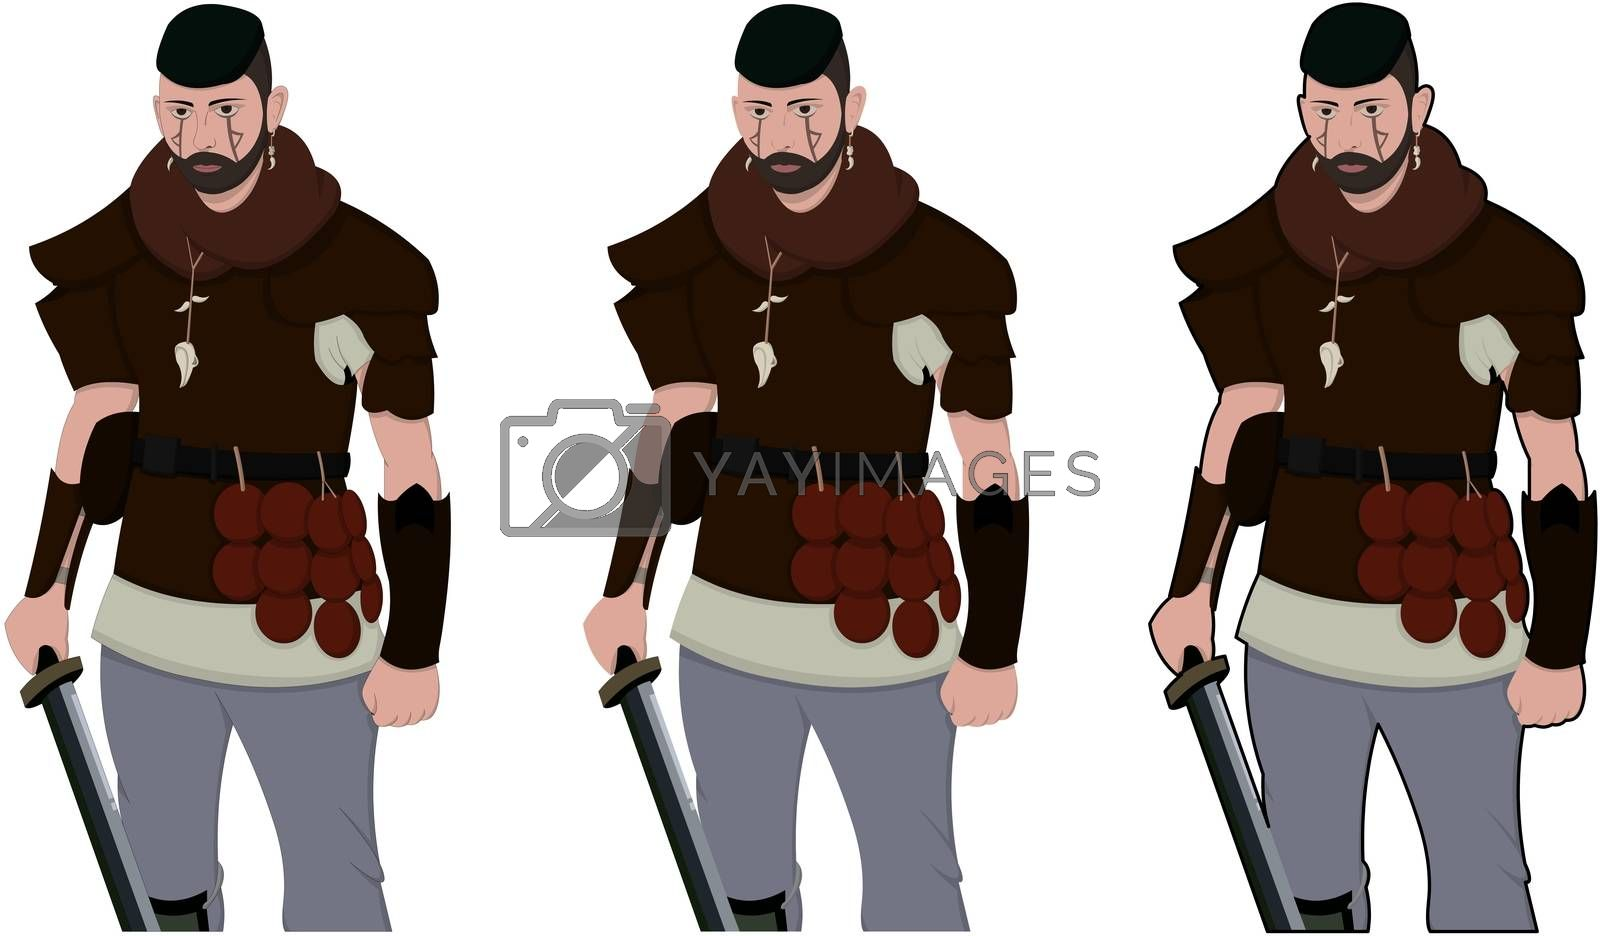 Warrior armed with sword viking and leather armor on a white background. With copyspace for your text. Larp role play. Battle and medieval war. battlefield. Illustration 2d